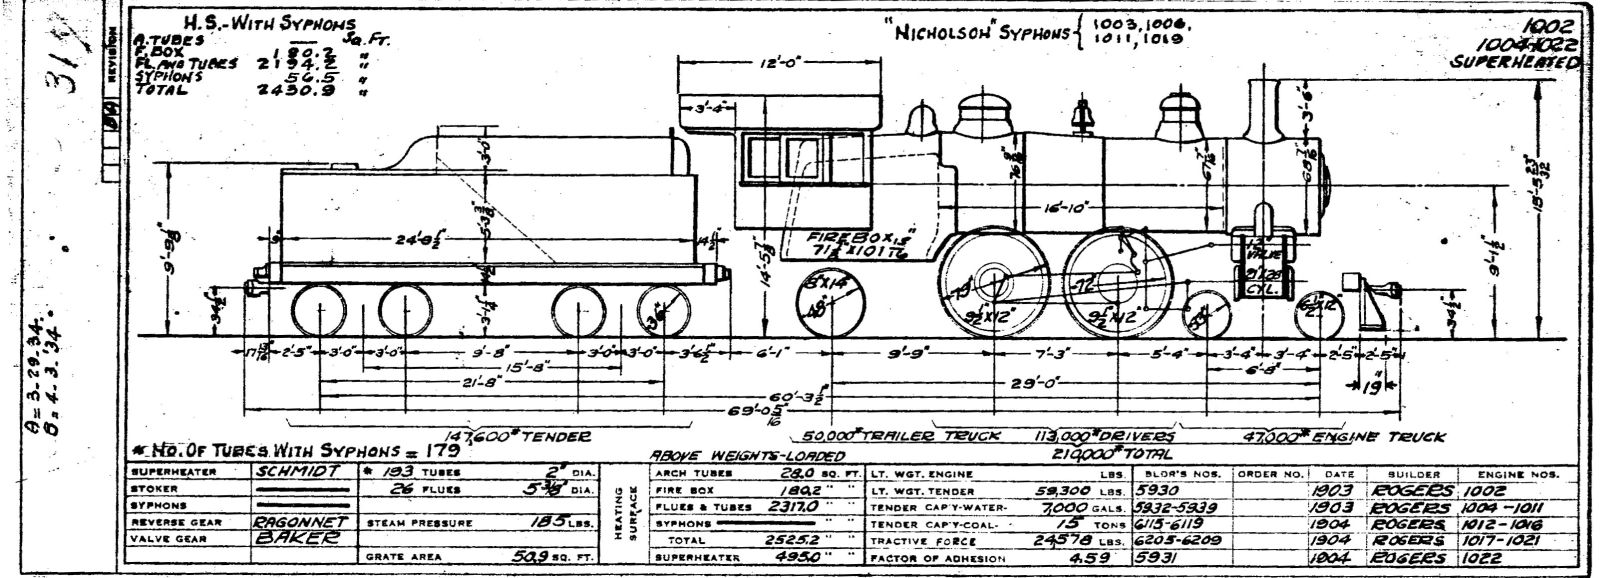 illinois central 1937 locomotive diagrams24 locomotives 1049 1053 25 locomotives 1069 1093 26 locomotives 1094 1138 27 locomotives 1139 1178 28 locomotives 1179 1203